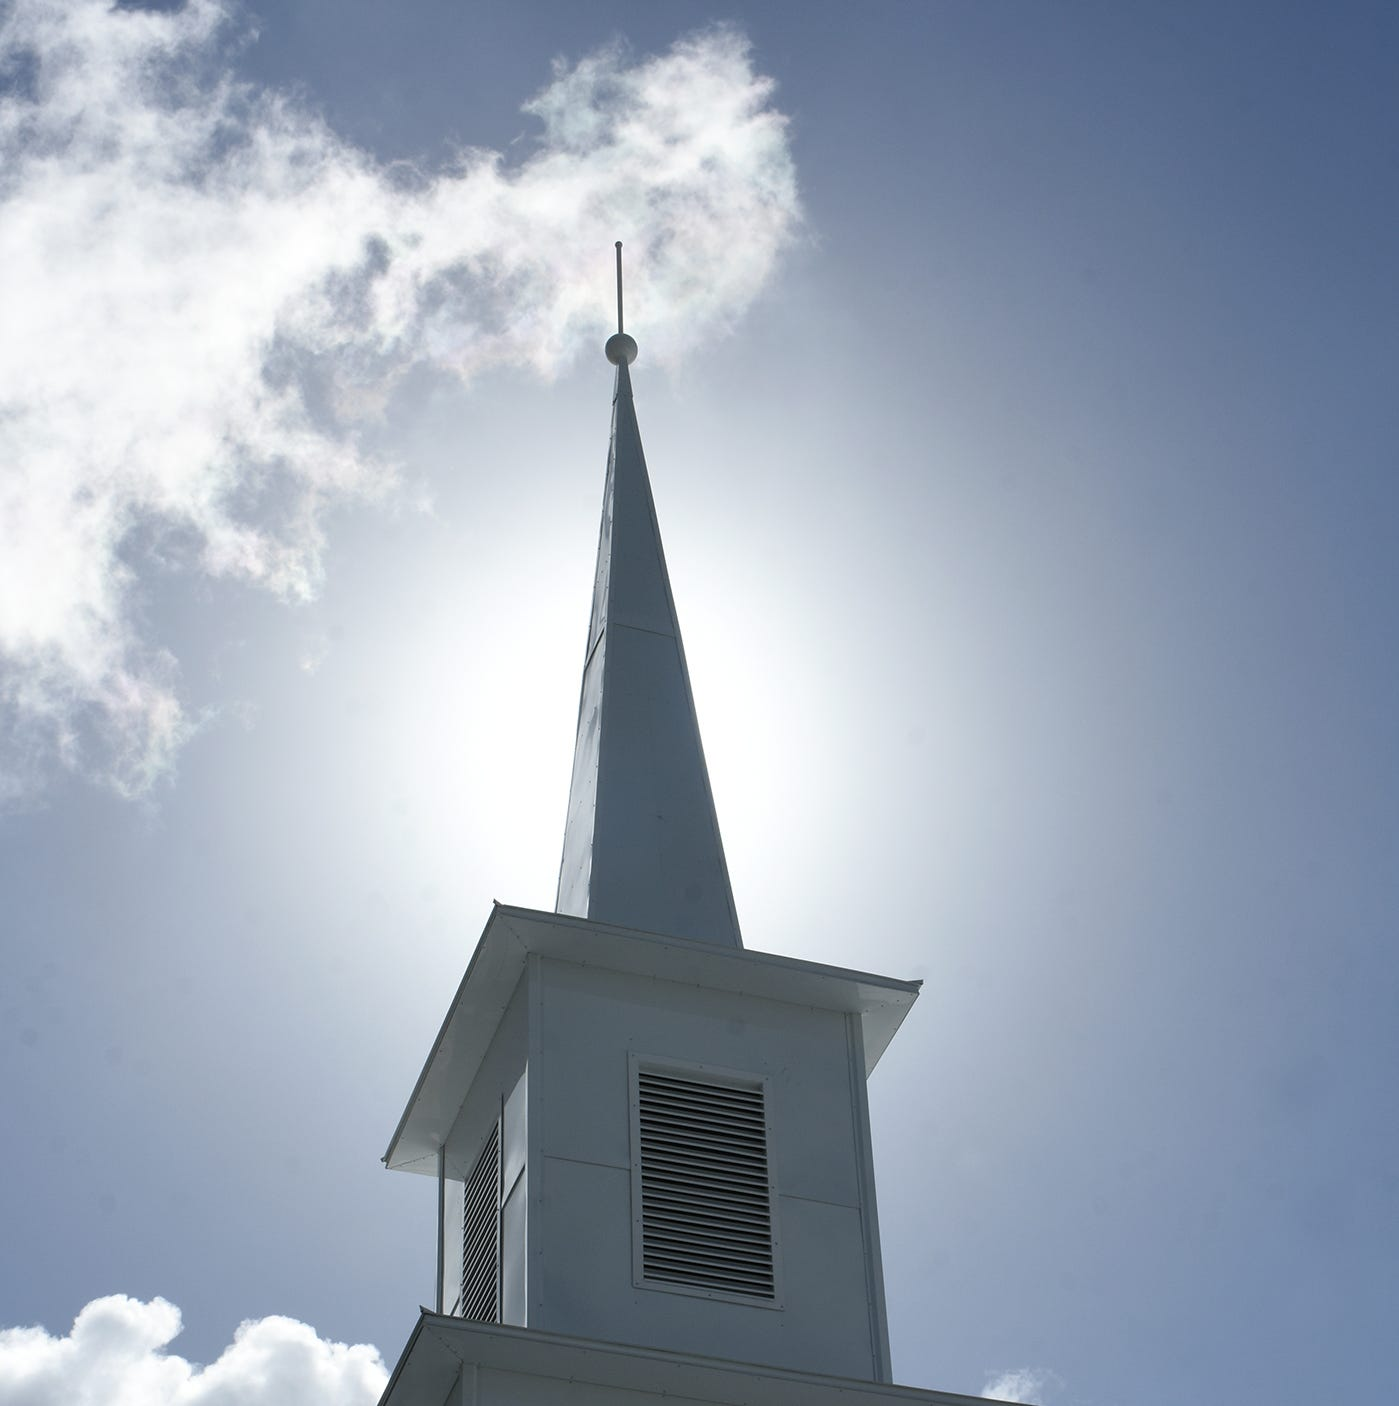 Lofty ambitions: United Church of Marco Island replaces steeple blown over by Irma